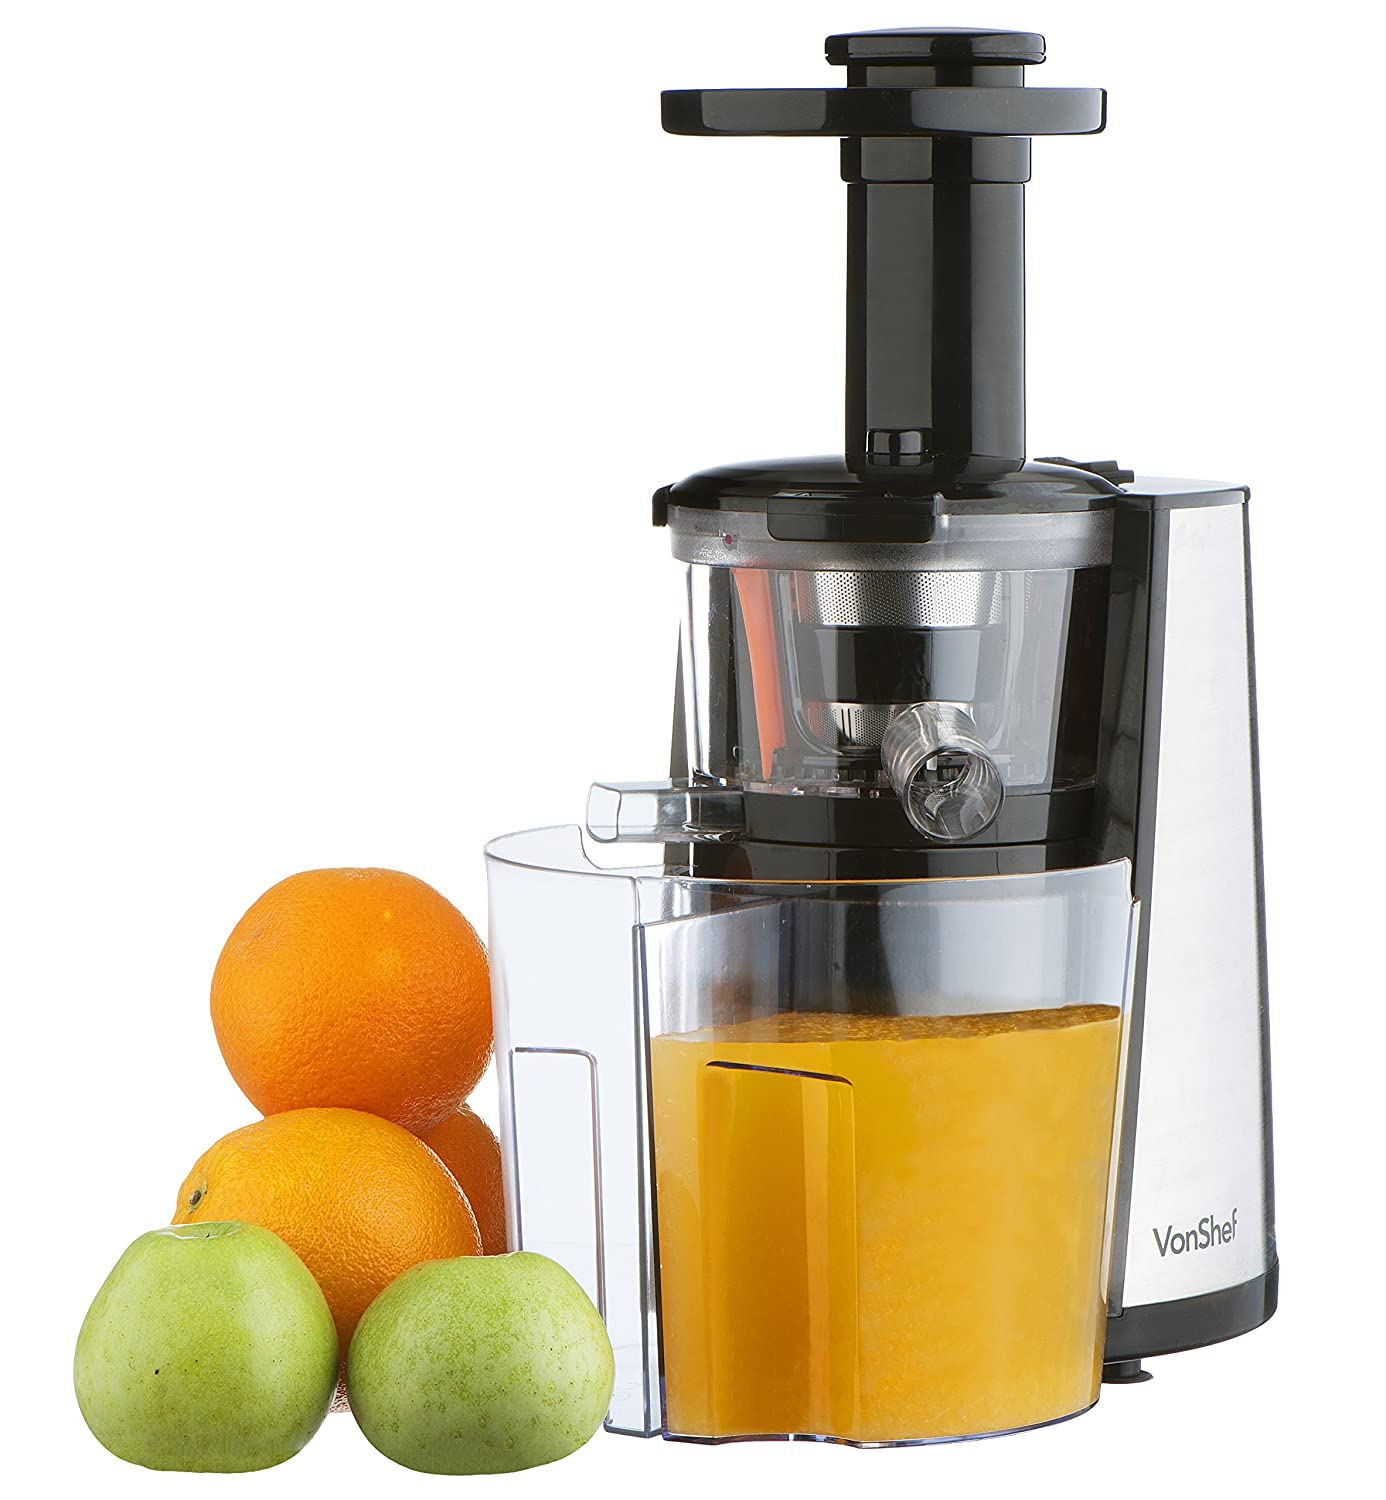 Top 10 Best Masticating Juicers 2016-2017 on Flipboard